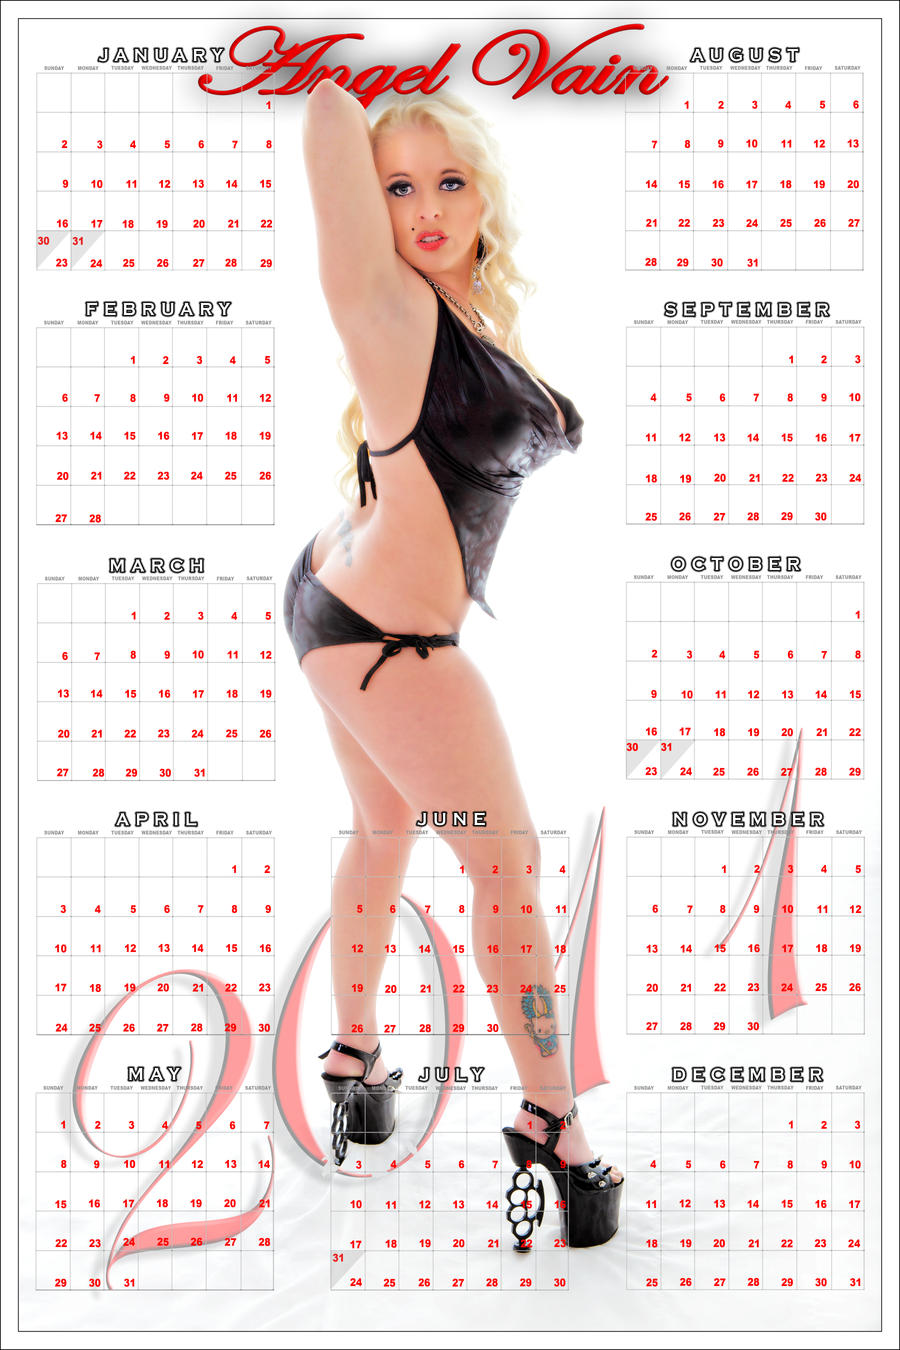 2011 calendars bobbi starr by rickkk d376equ Specializing in Japanese gay